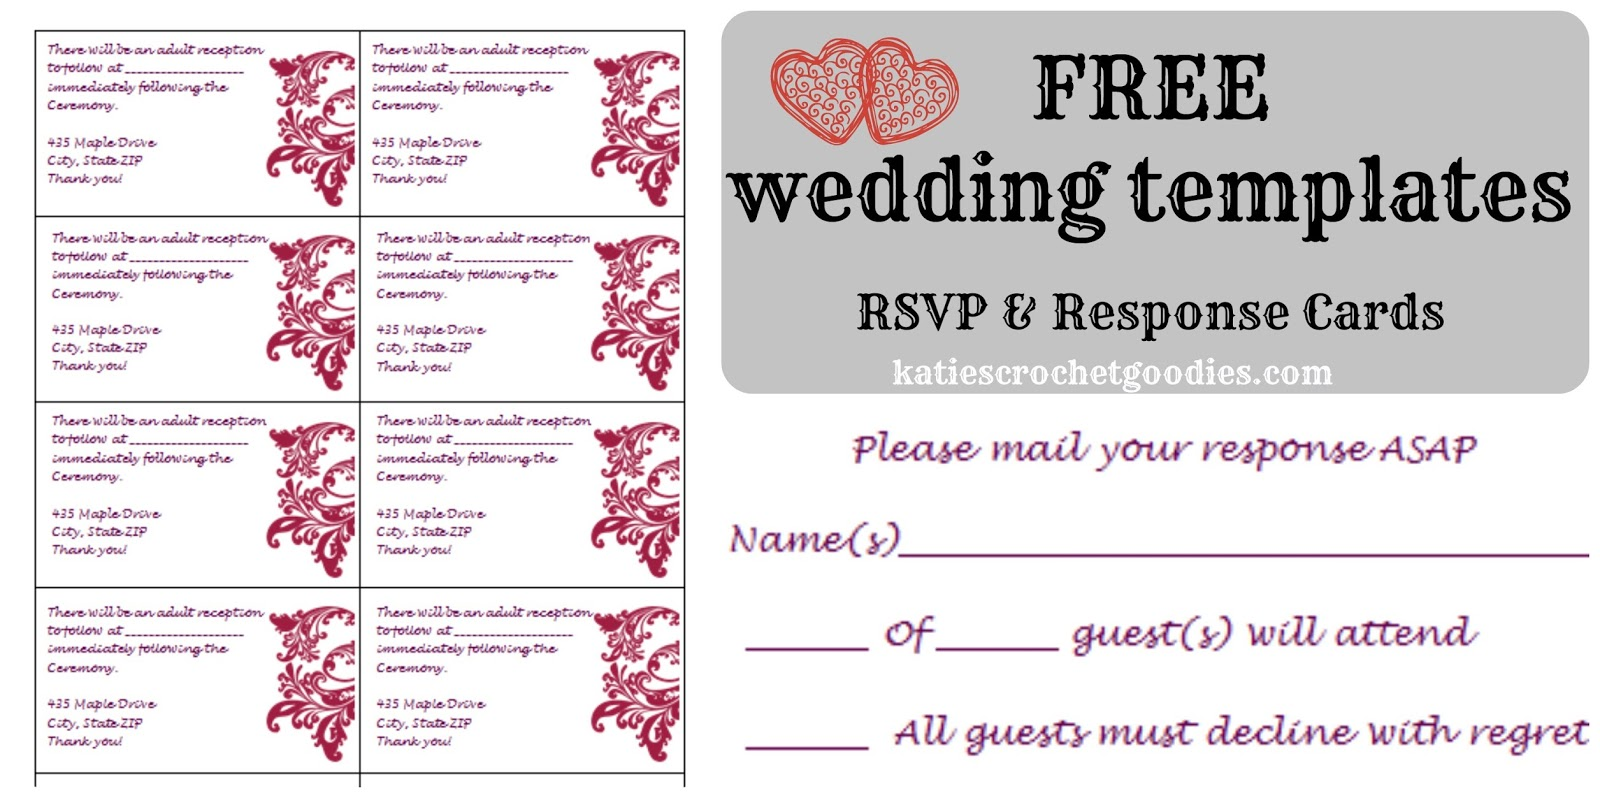 Free wedding templates rsvp reception cards katie39s crochet goodies for Wedding rsvp templates